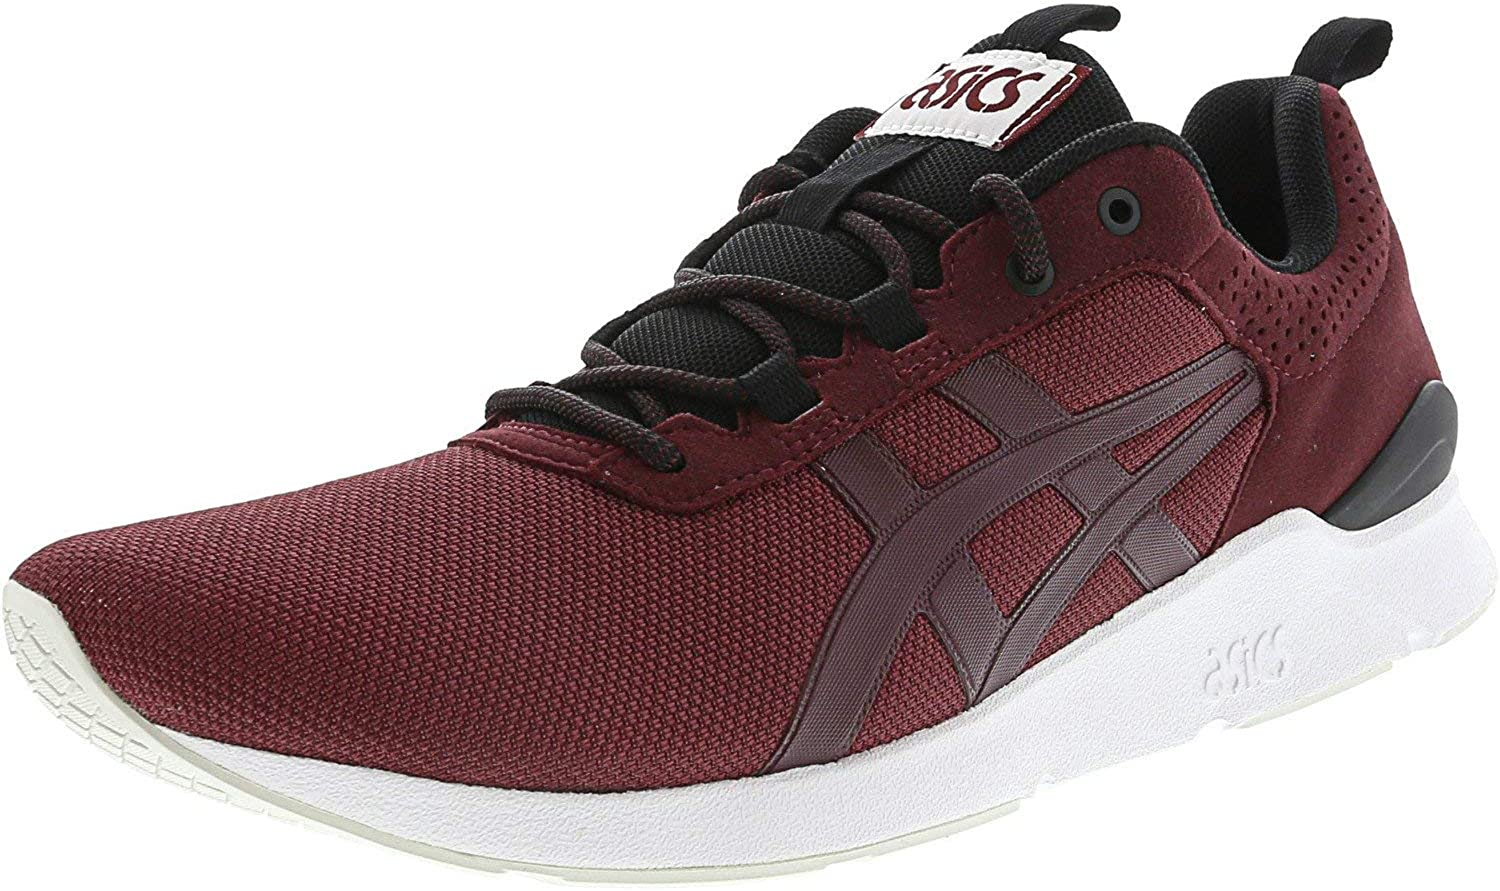 ASICS Men's Gel-Lyte Runner Ankle-High Mesh Running shoes